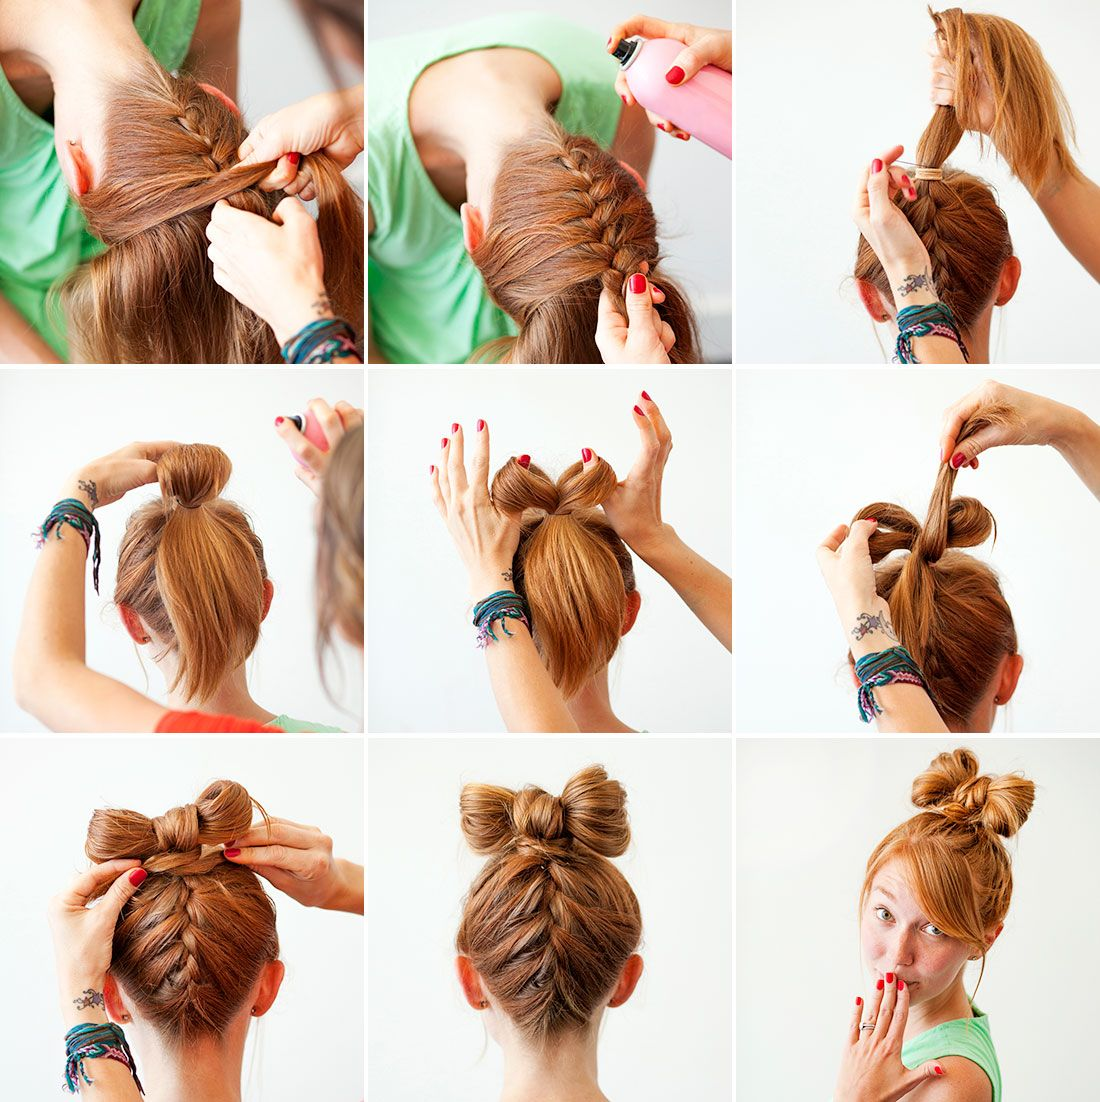 Halloween Hairstyle For Kids With Halloween Rings Embellishments Halloween Hair Kids Hairstyles Short Hair For Kids